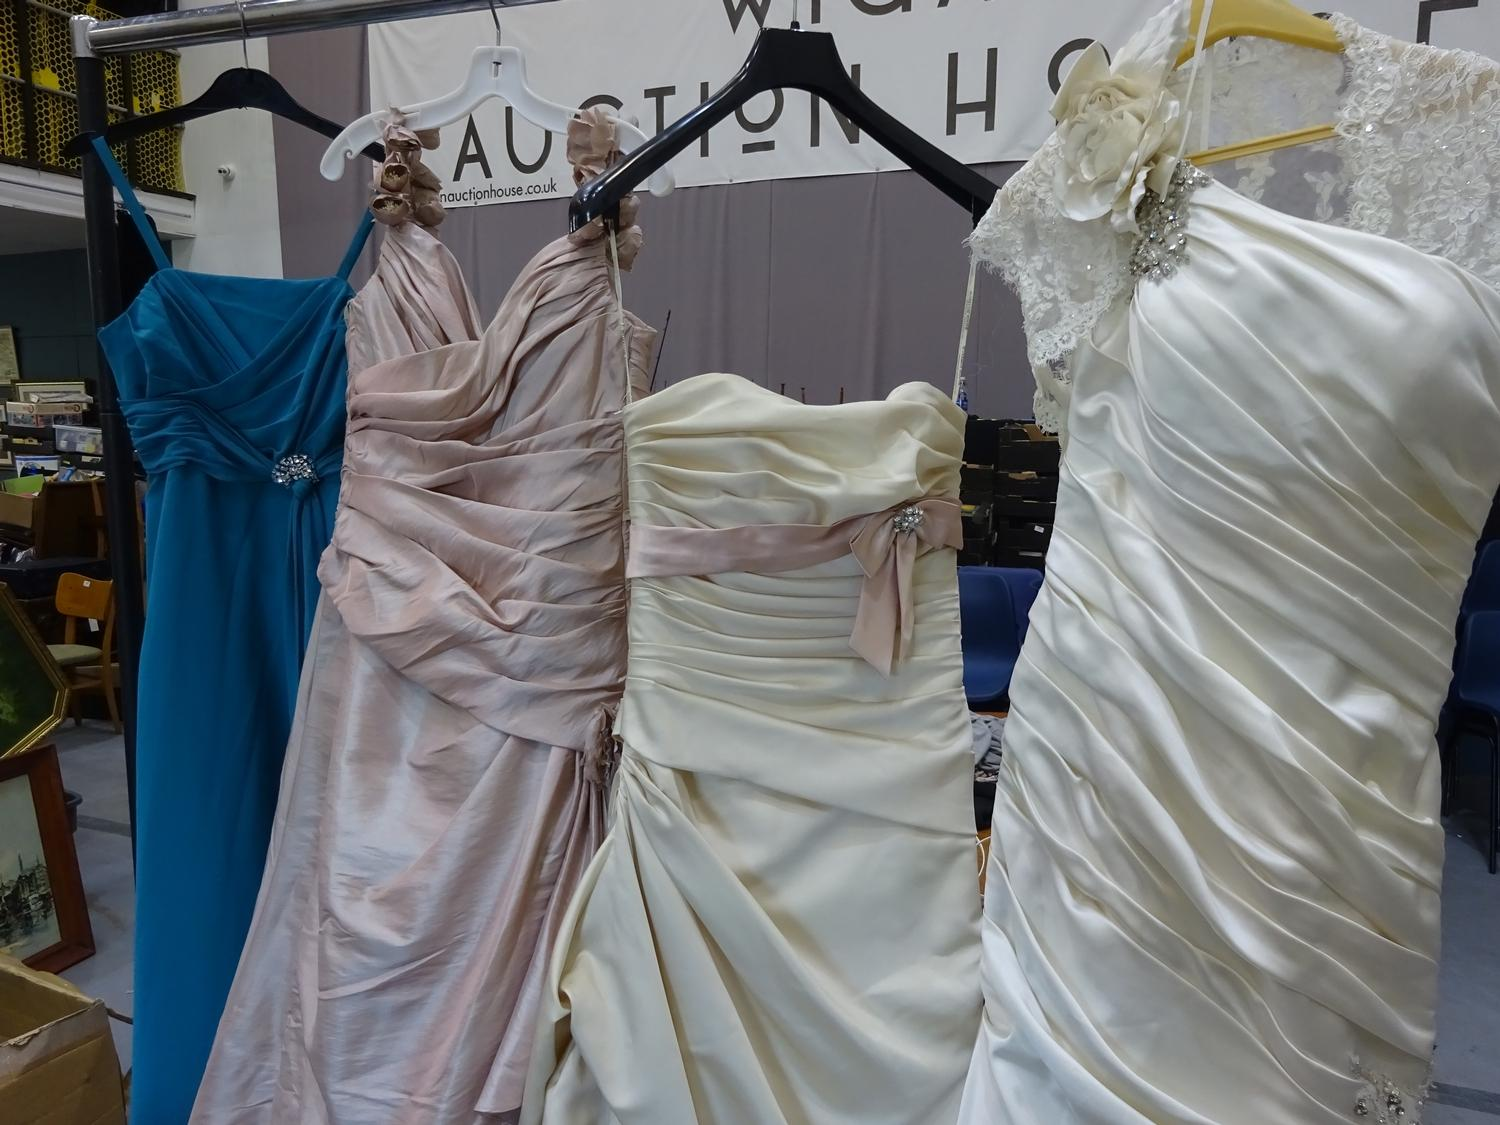 Lot 328 - (11) 3 x Maggie Sottero wedding gown samples, total rrp £2370